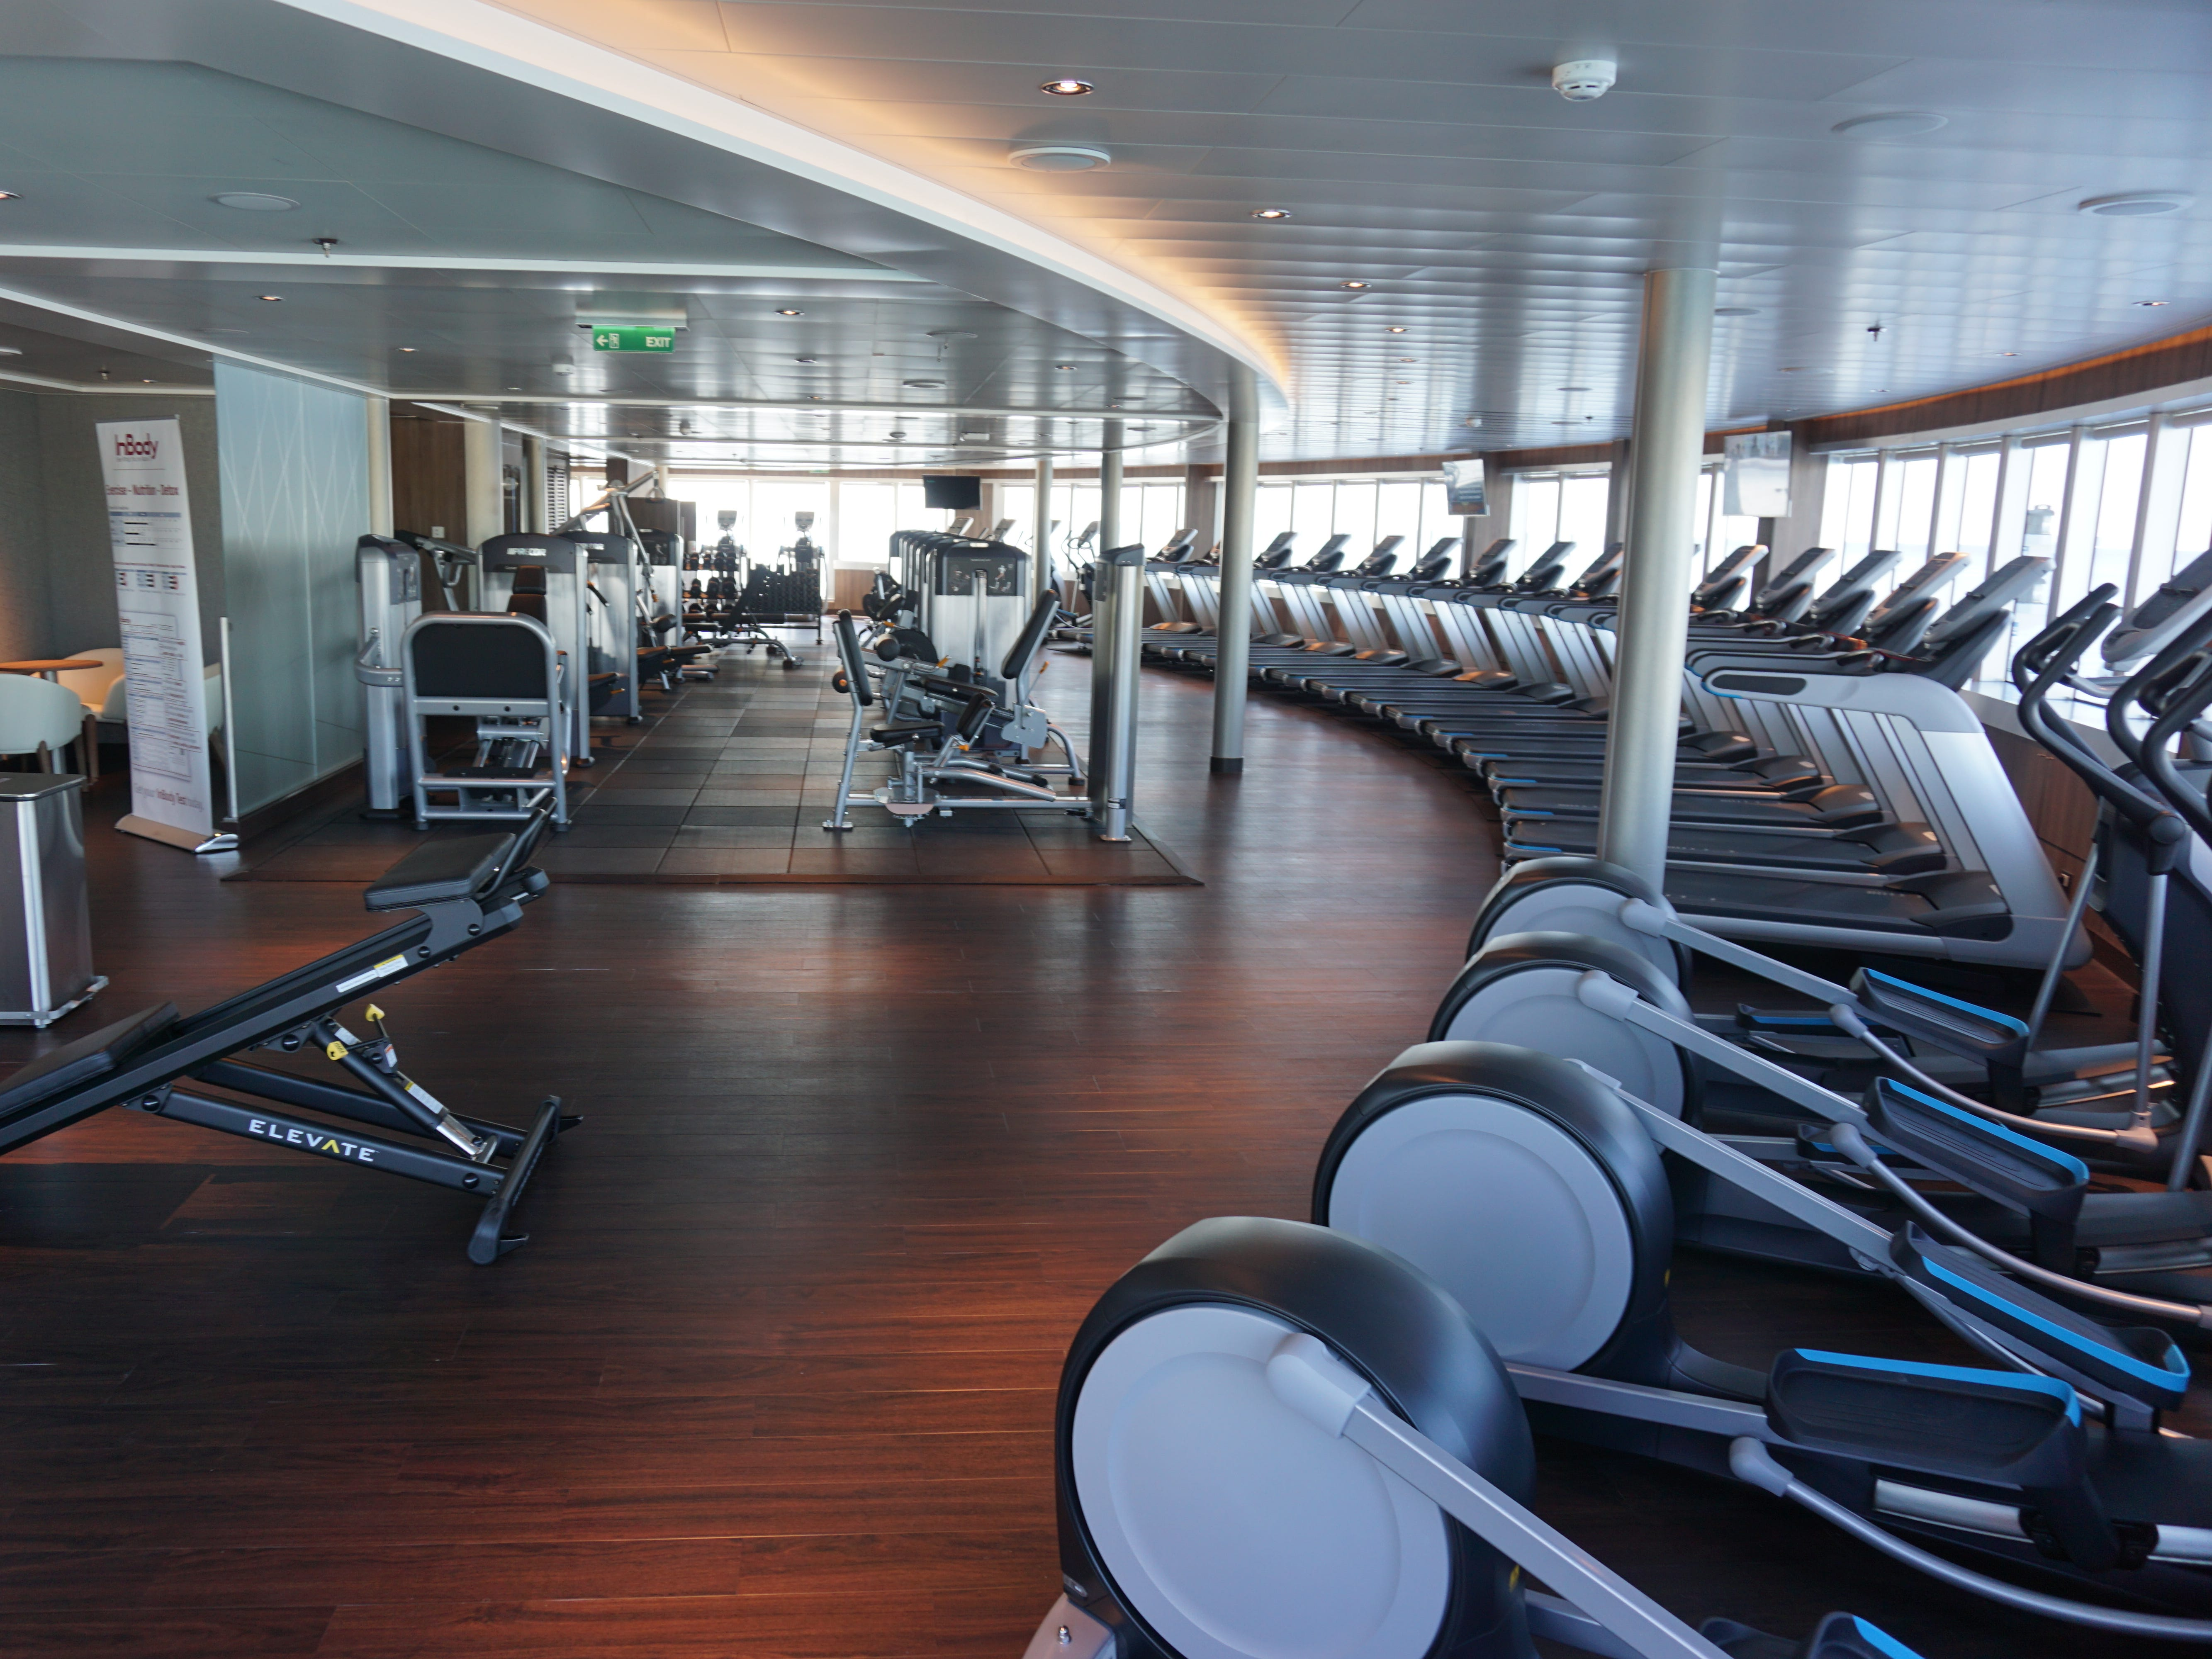 The gym has a wide selection of cardio machines, weight machines and free weights.